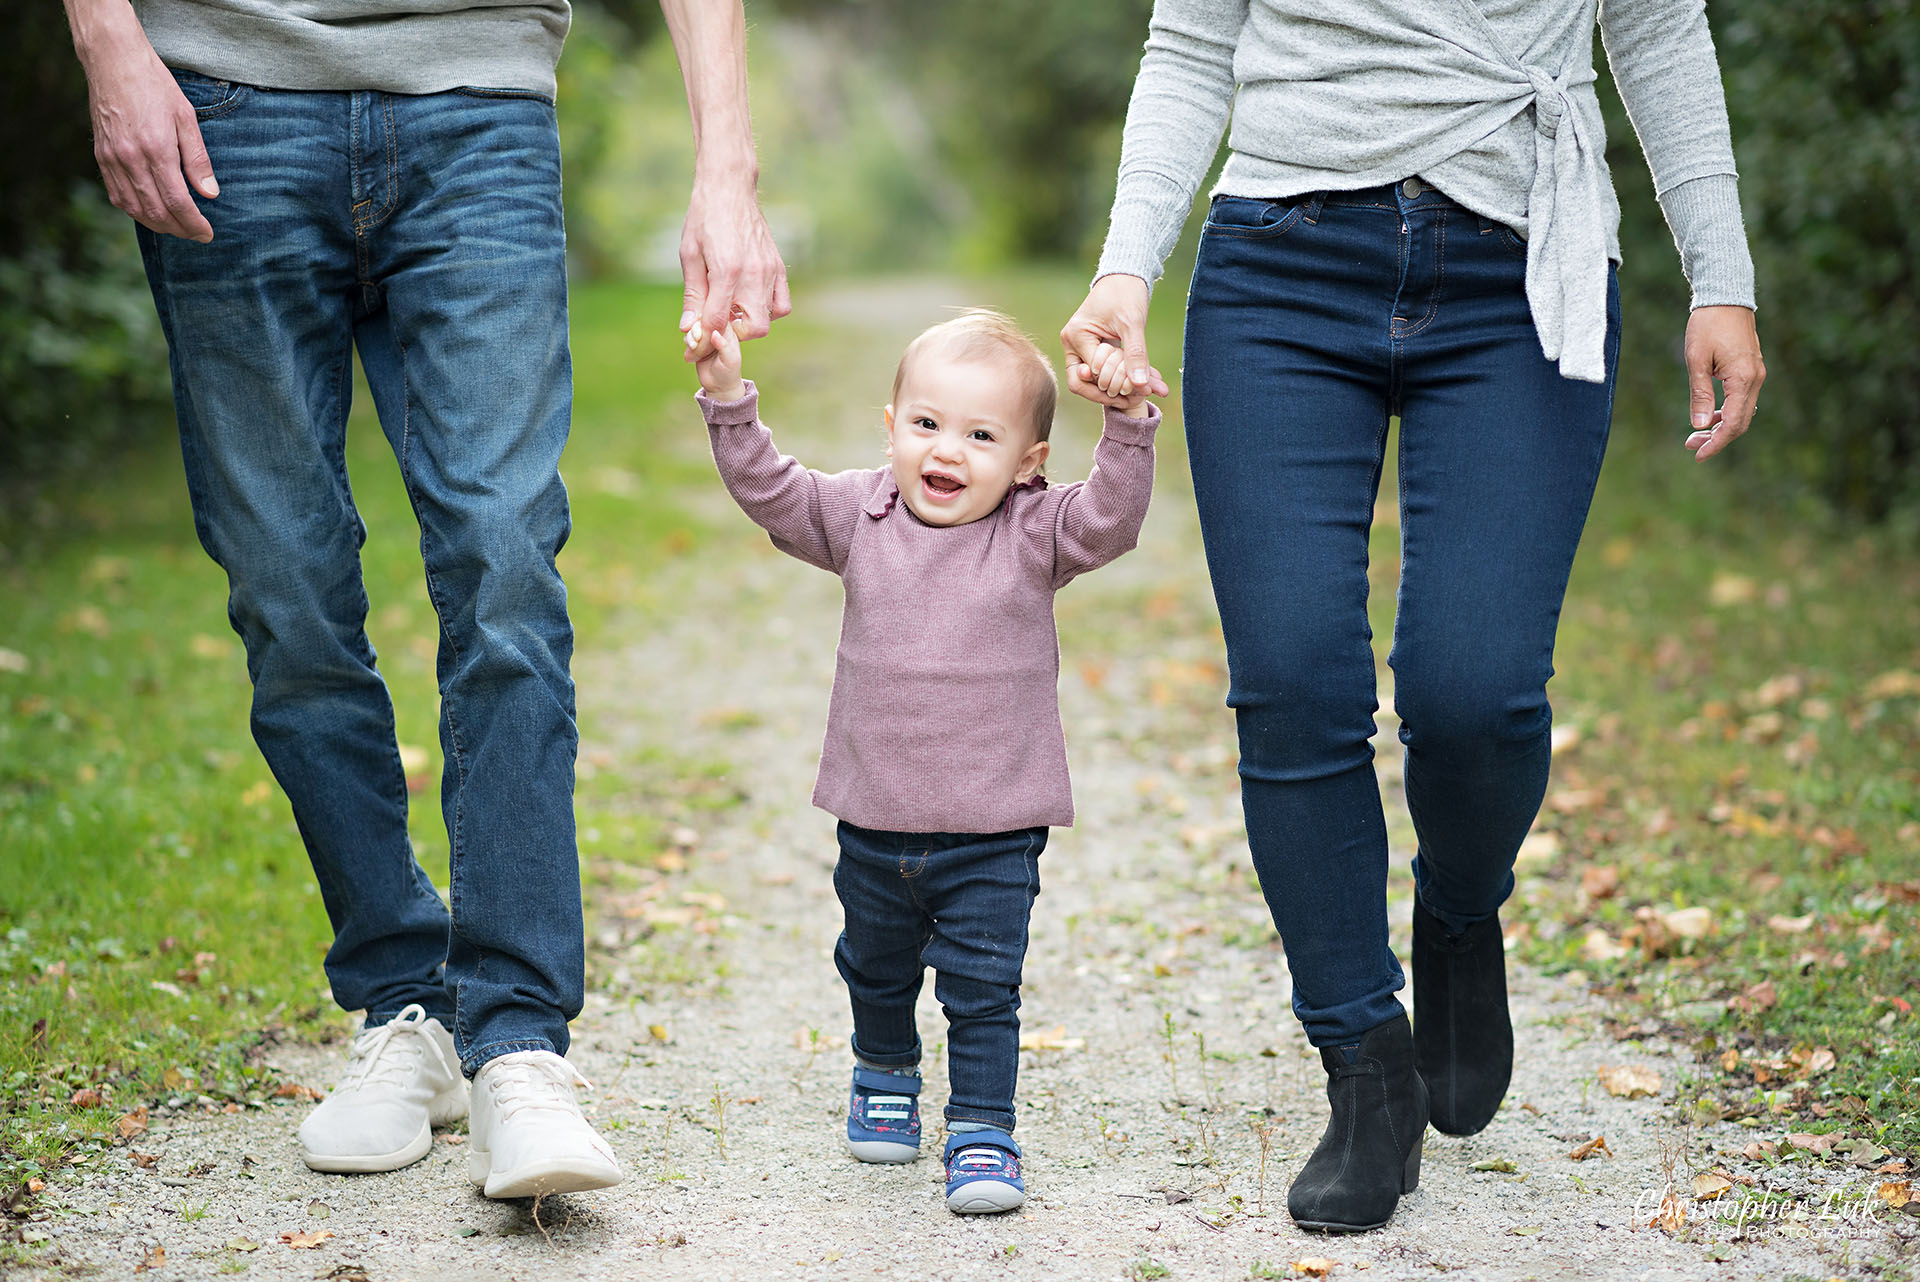 Christopher Luk Toronto Wedding Photographer Richmond Hill Baby Girl Sister Children Family Pictures Candid Natural Photojournalistic Mother Father Mom Dad Motherhood Smile Daughter Walking Holding Hands Feet Close